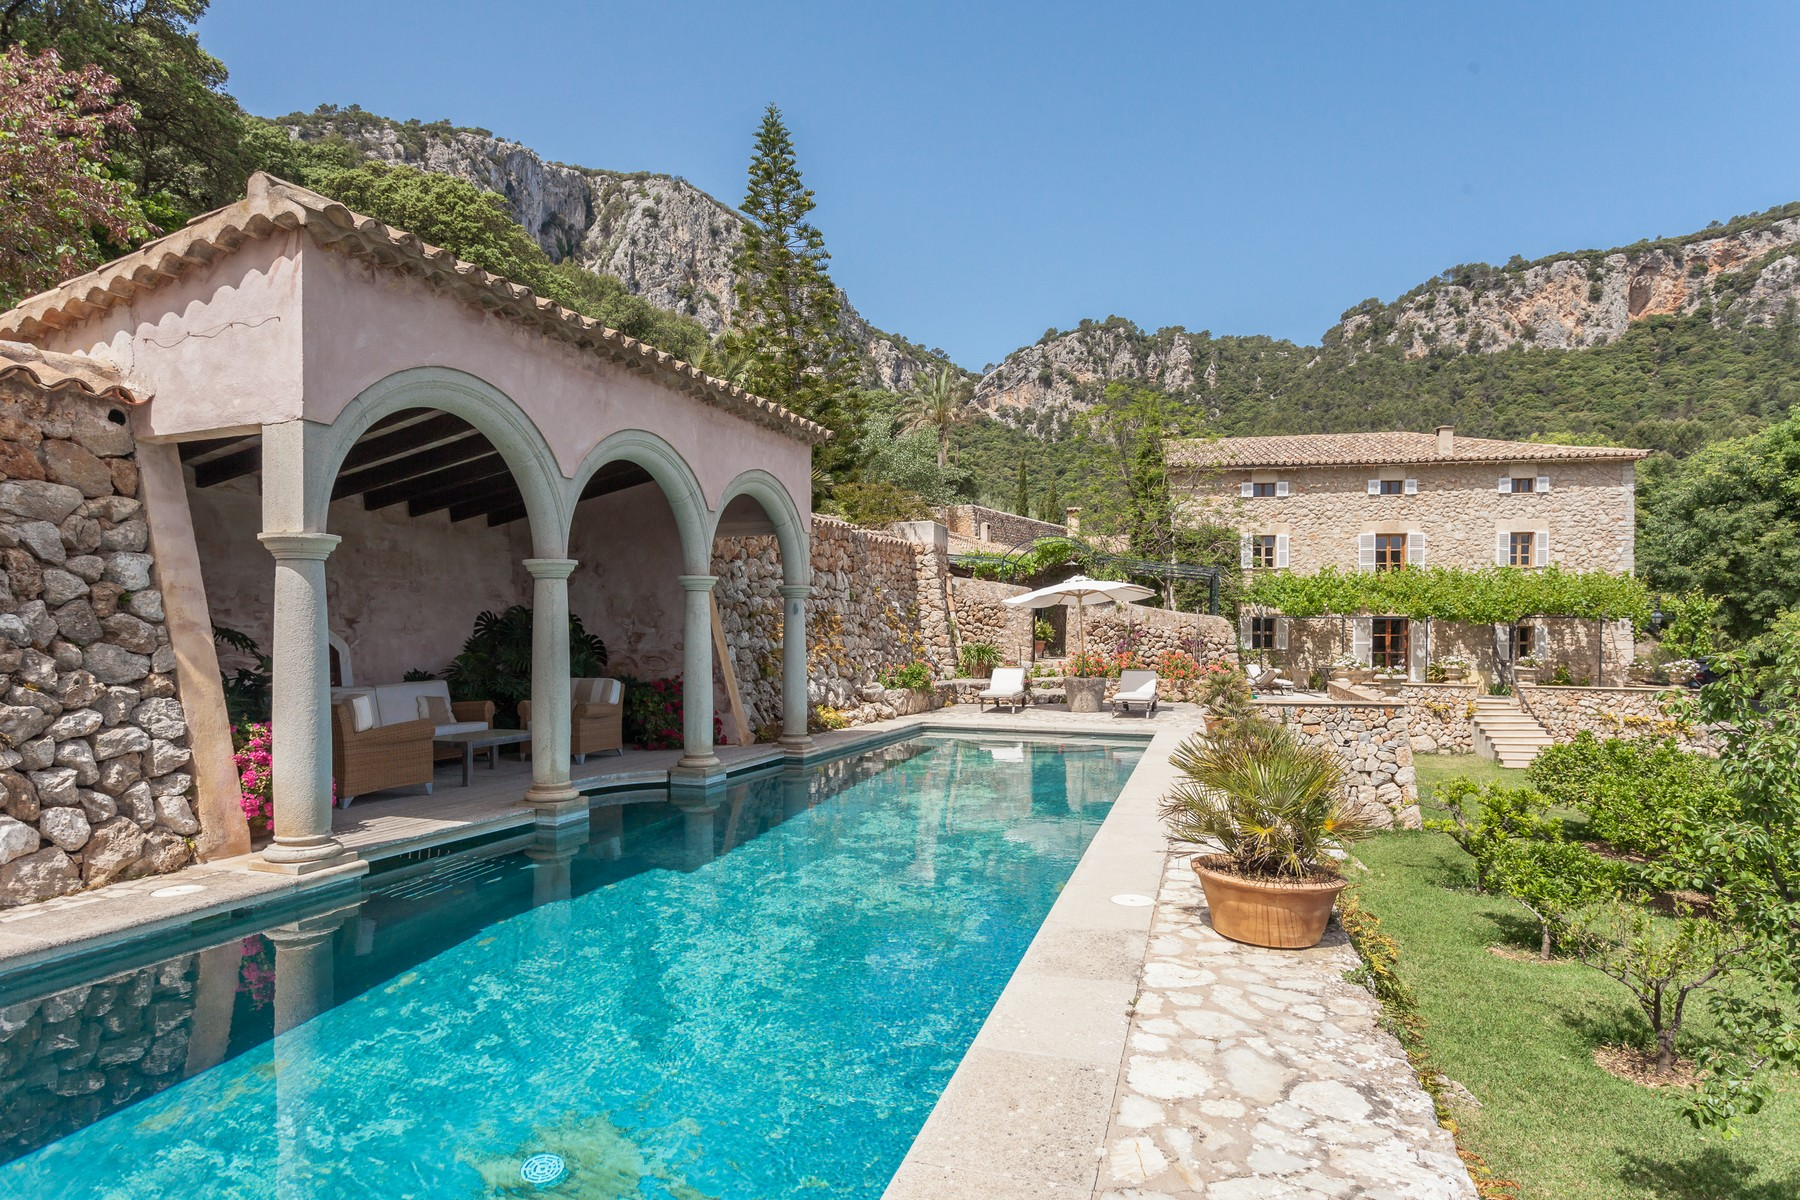 Single Family Home for Sale at Extraordinary Majorcan house in Esporles Esporles, Mallorca, 07190 Spain